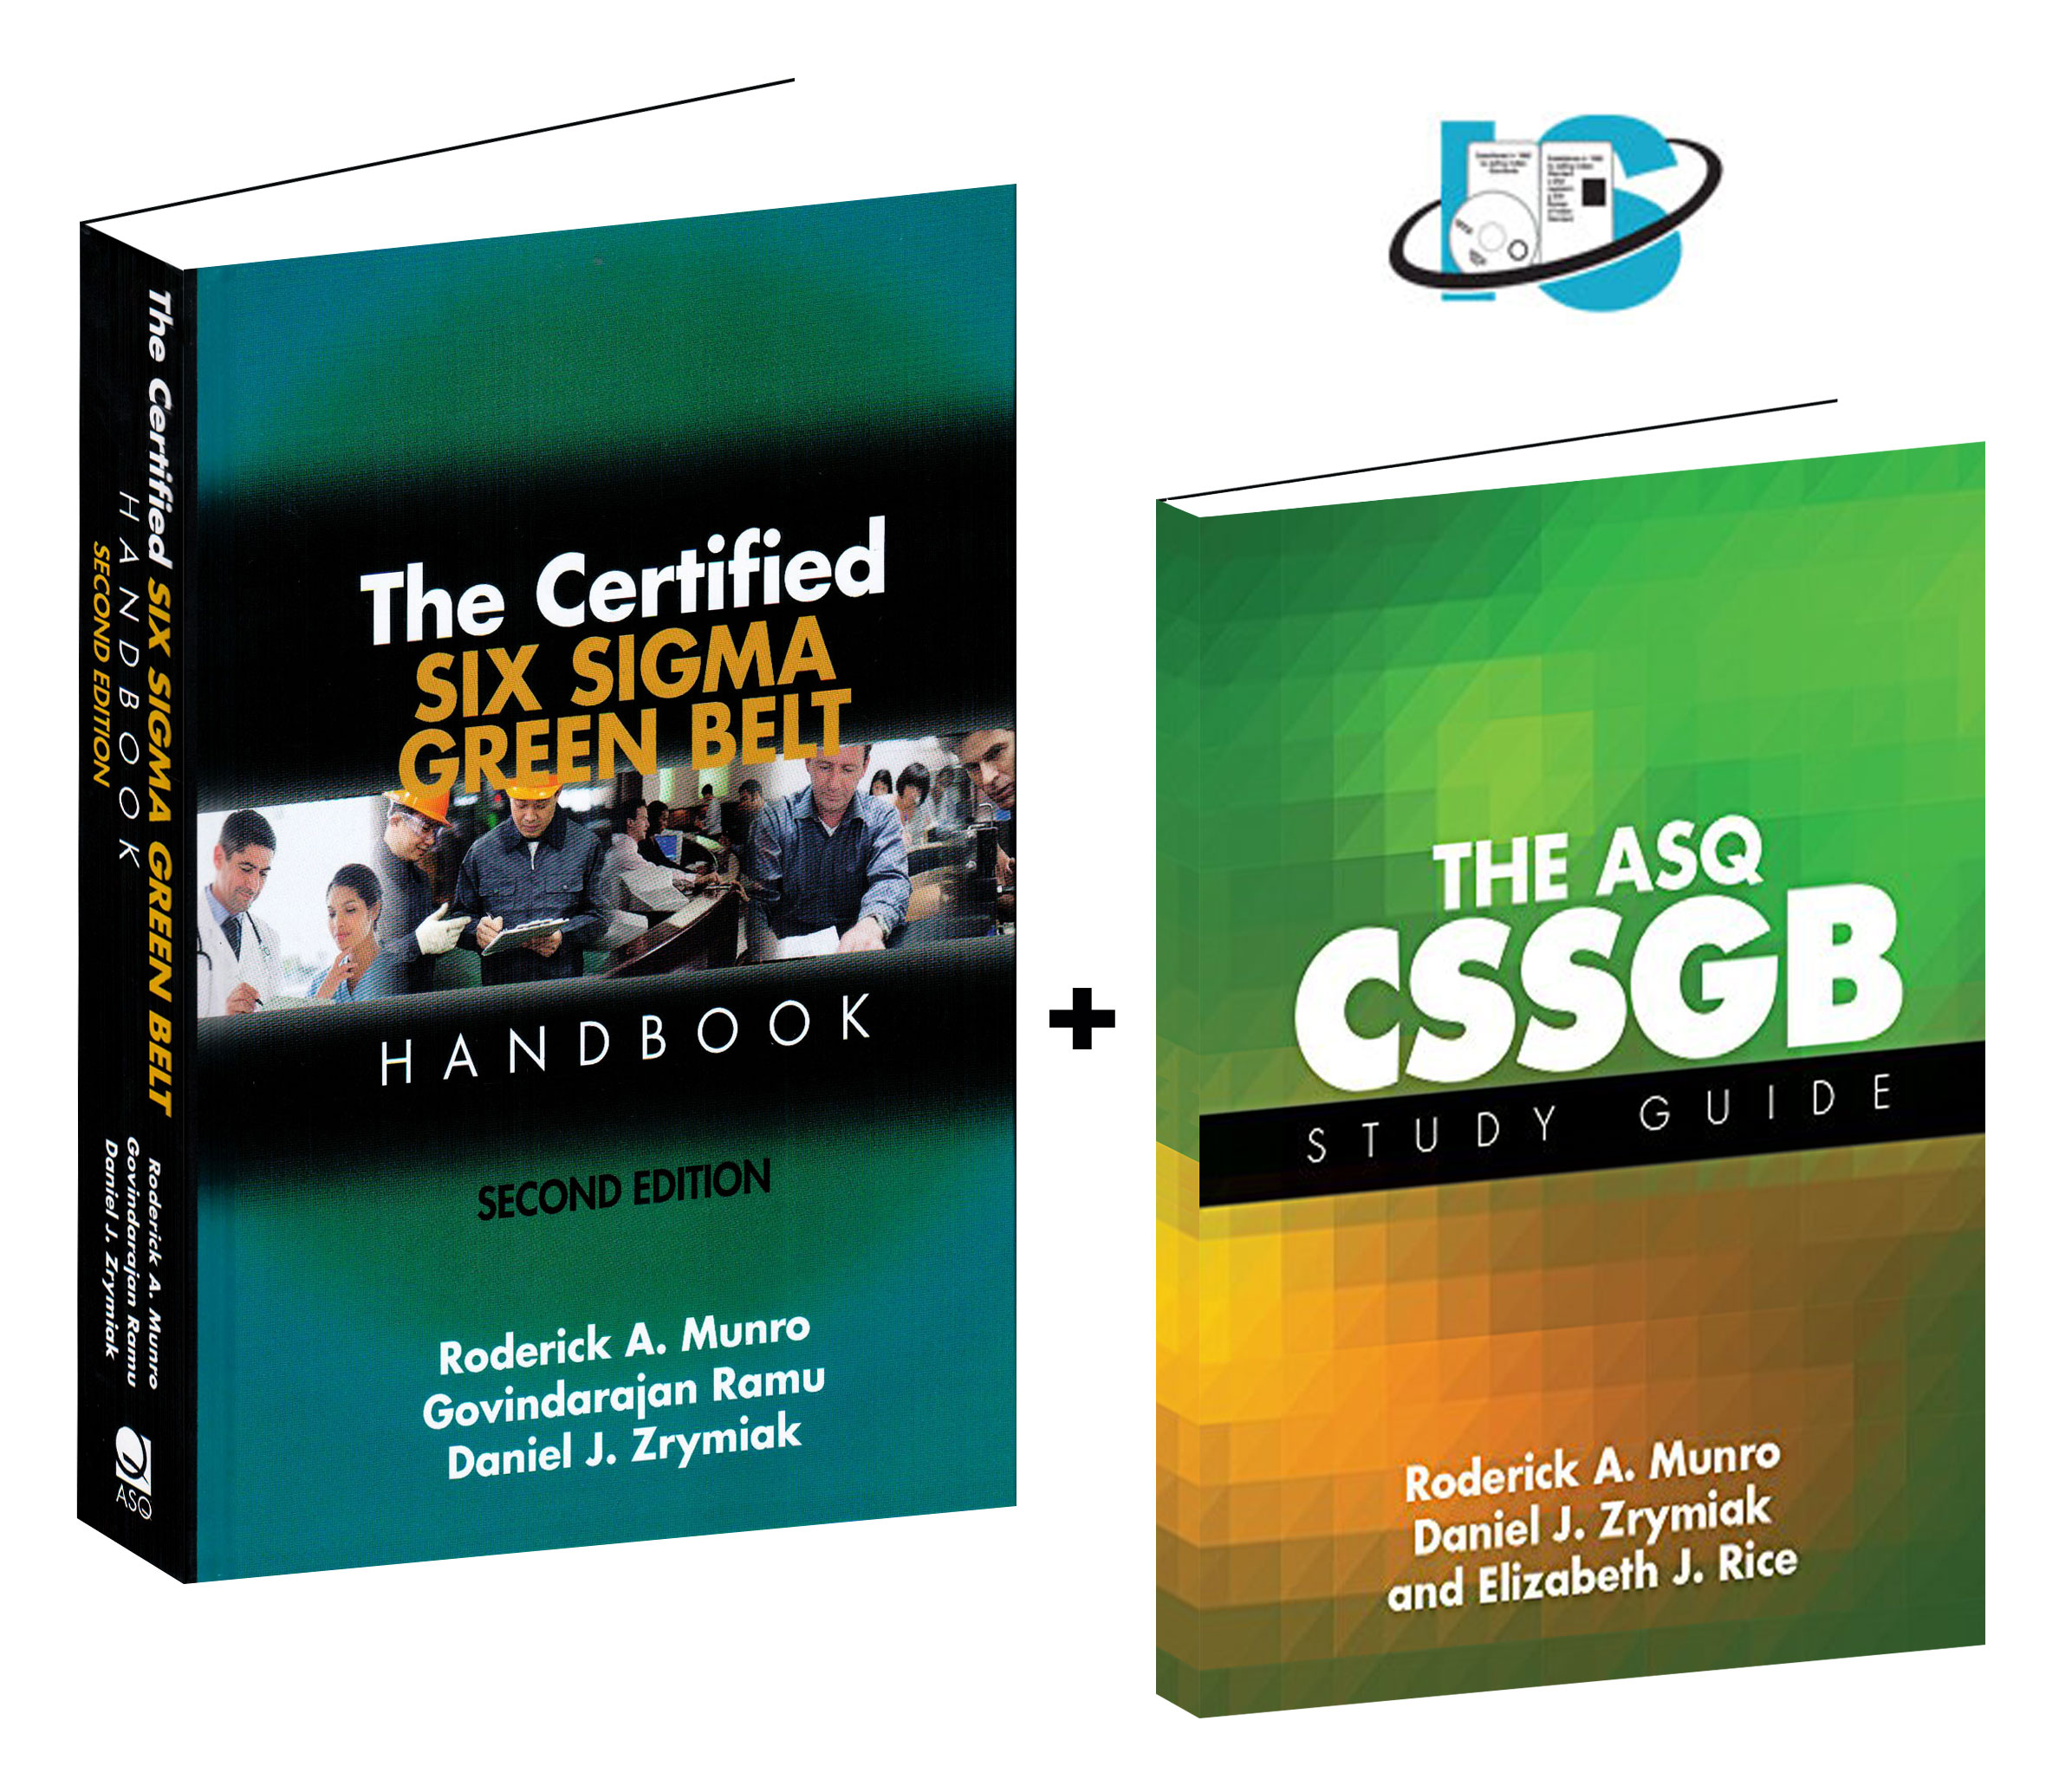 The Certified Six Sigma Green Belt Handbook Asq Cssgb Study Guide